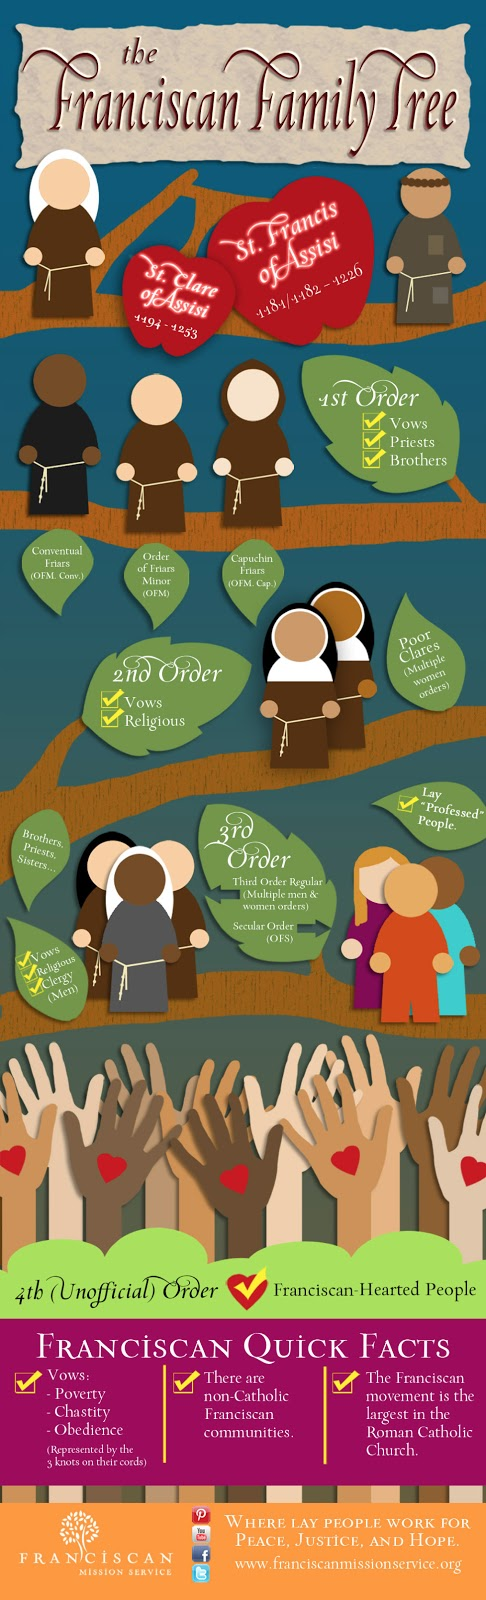 The Franciscan Family Tree